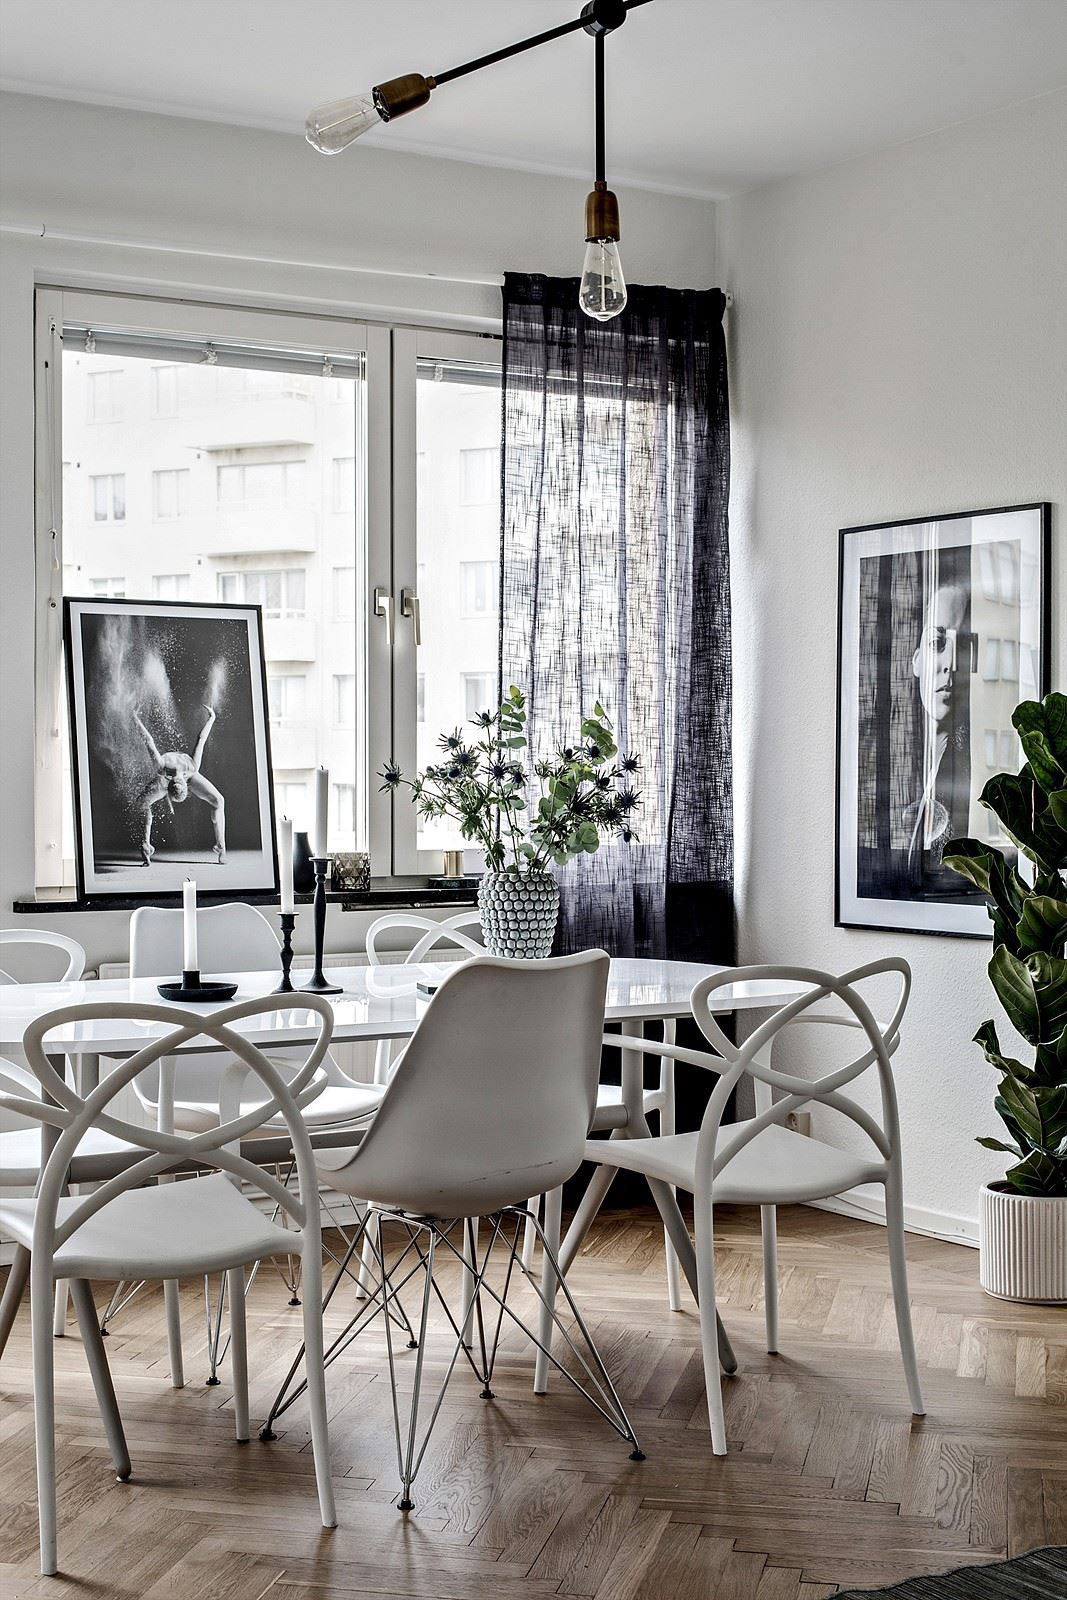 Mismatched Dining Chairs 3 Homes That Play With The Contrast Of Black And White